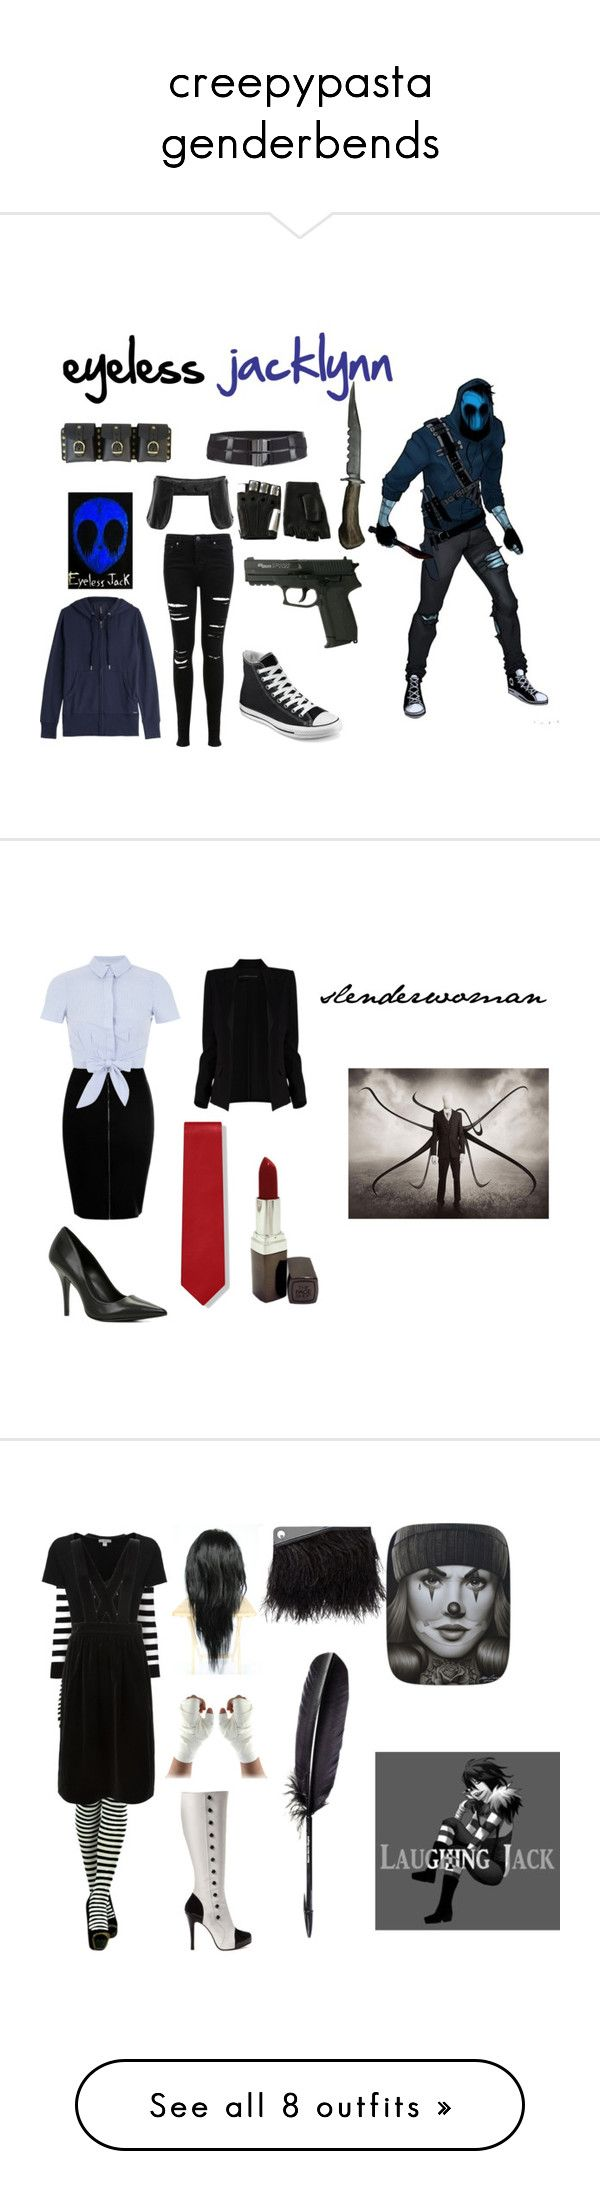 creepypasta genderbends by piercethe-arctic-disco on Polyvore featuring Miss Selfridge, Opening Ceremony, Converse, Majesty Black, Woolrich, Alexandre Vauthier, ALDO, The Face Shop, ToBeInStyle and Yves Saint Laurent